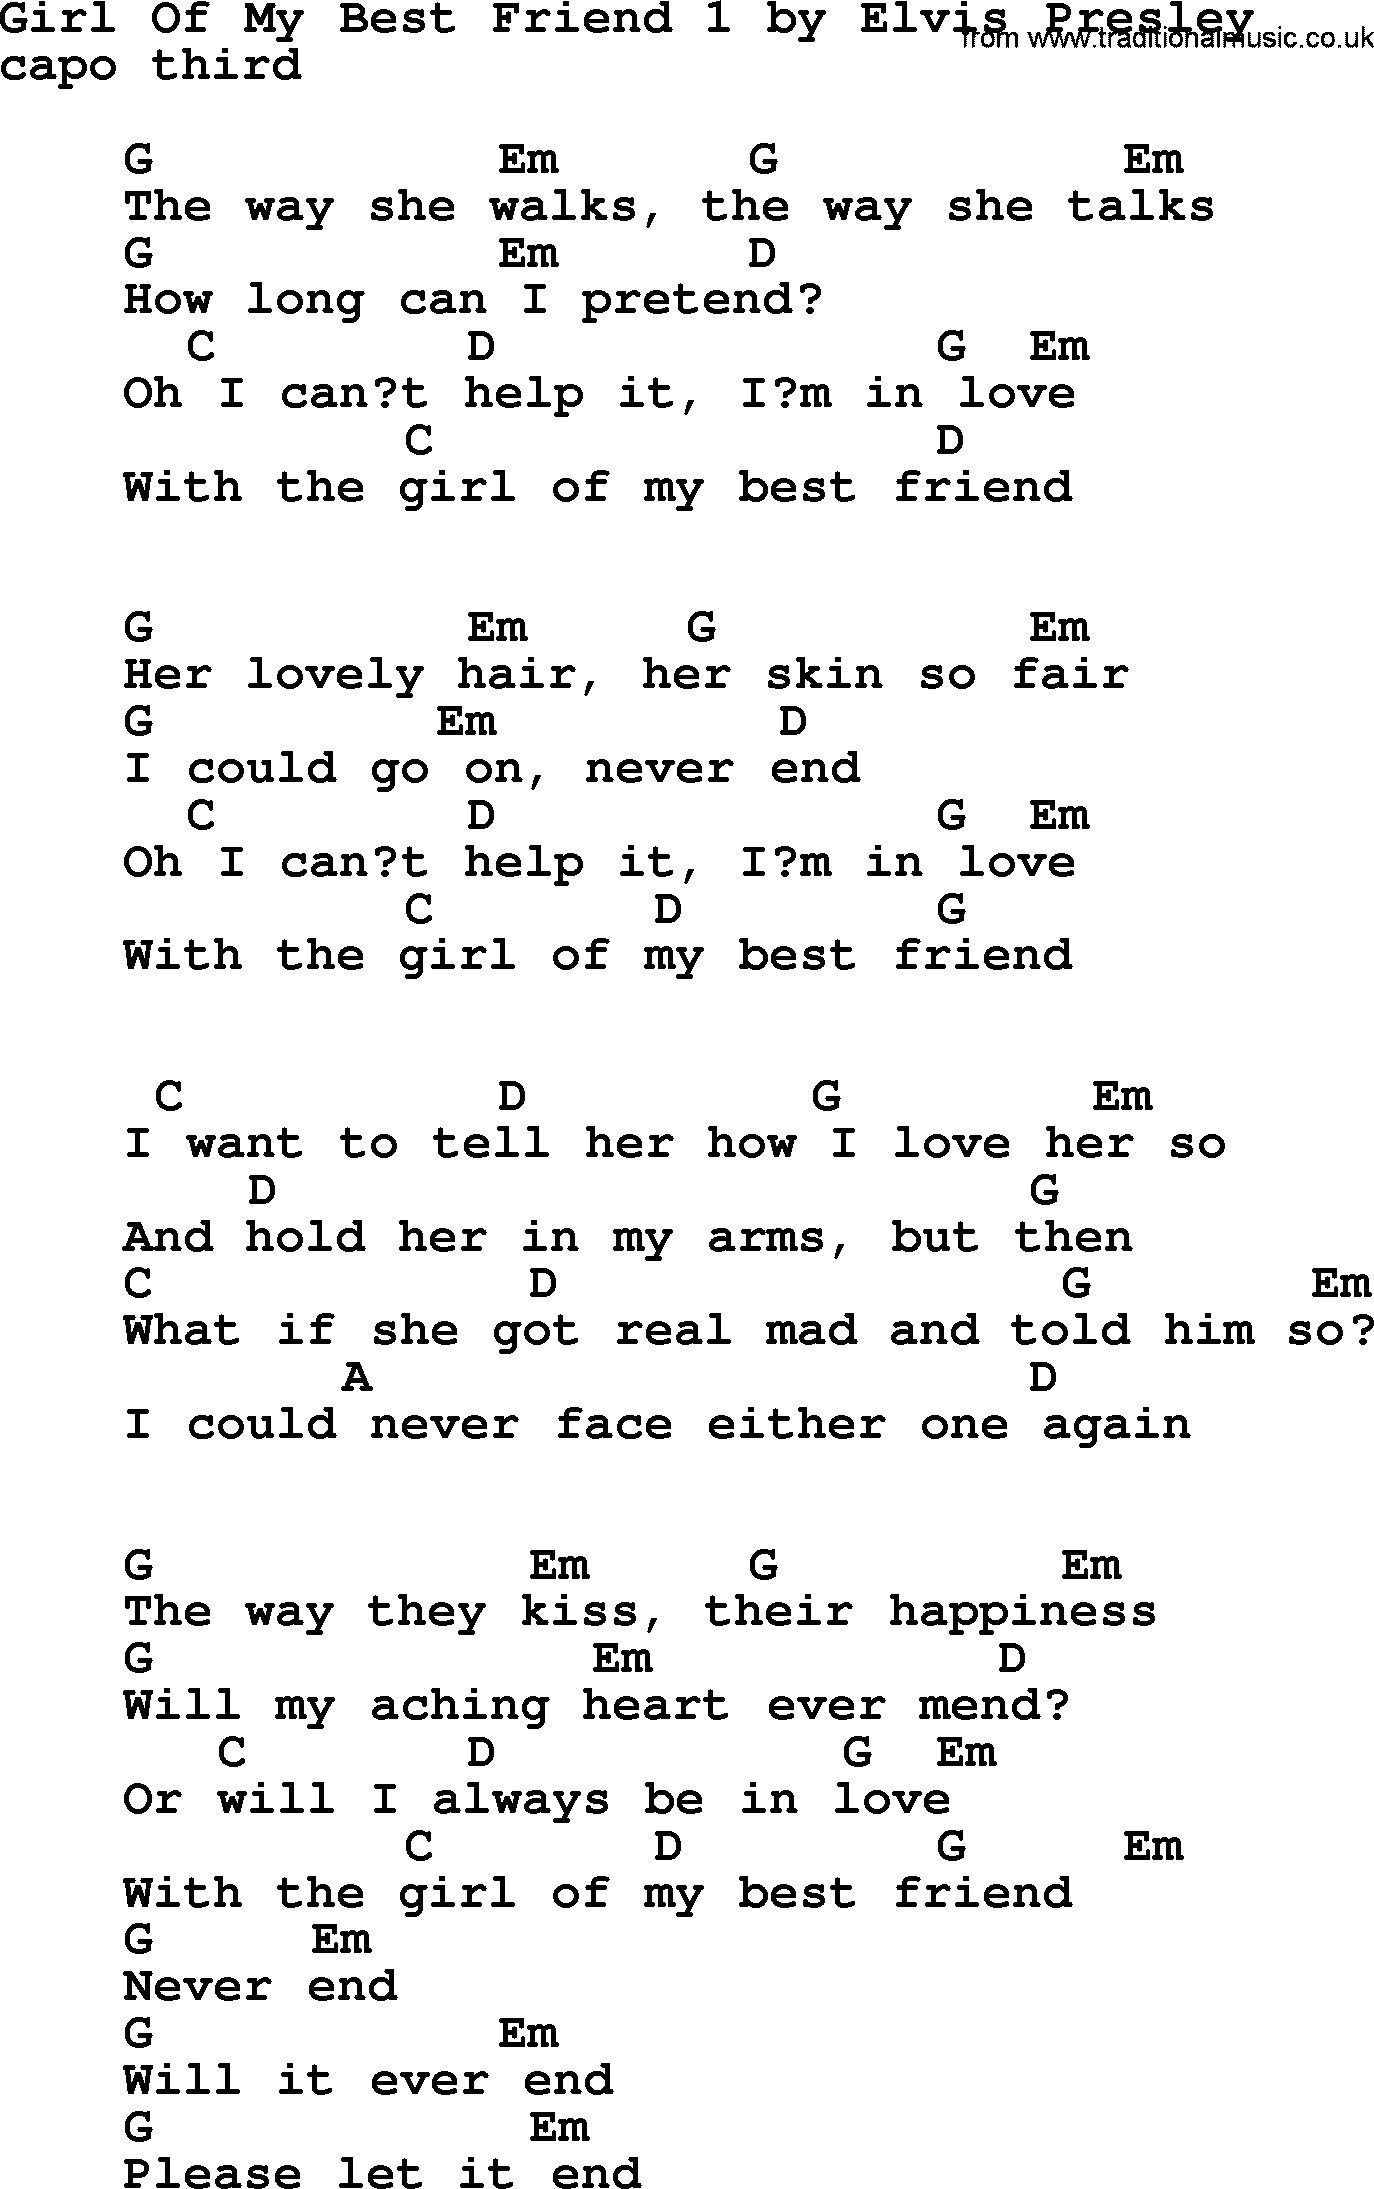 Girl Of My Best Friend 1 By Elvis Presley Lyrics And Chords